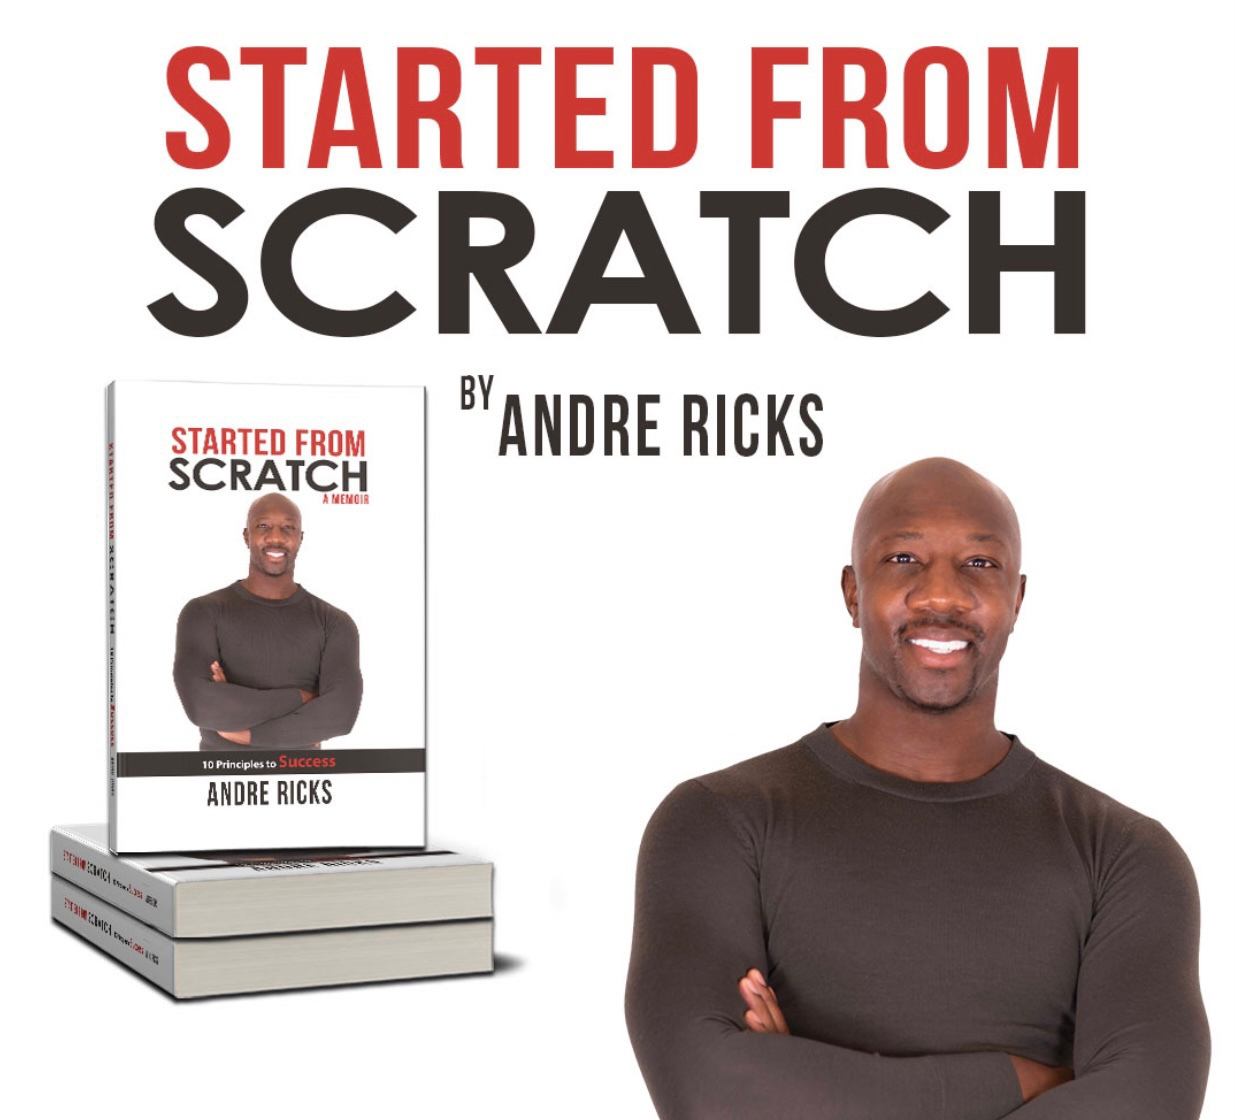 STARTED FROM SCRATCH, 10 Principles to Success, a Memoir by Andre Ricks